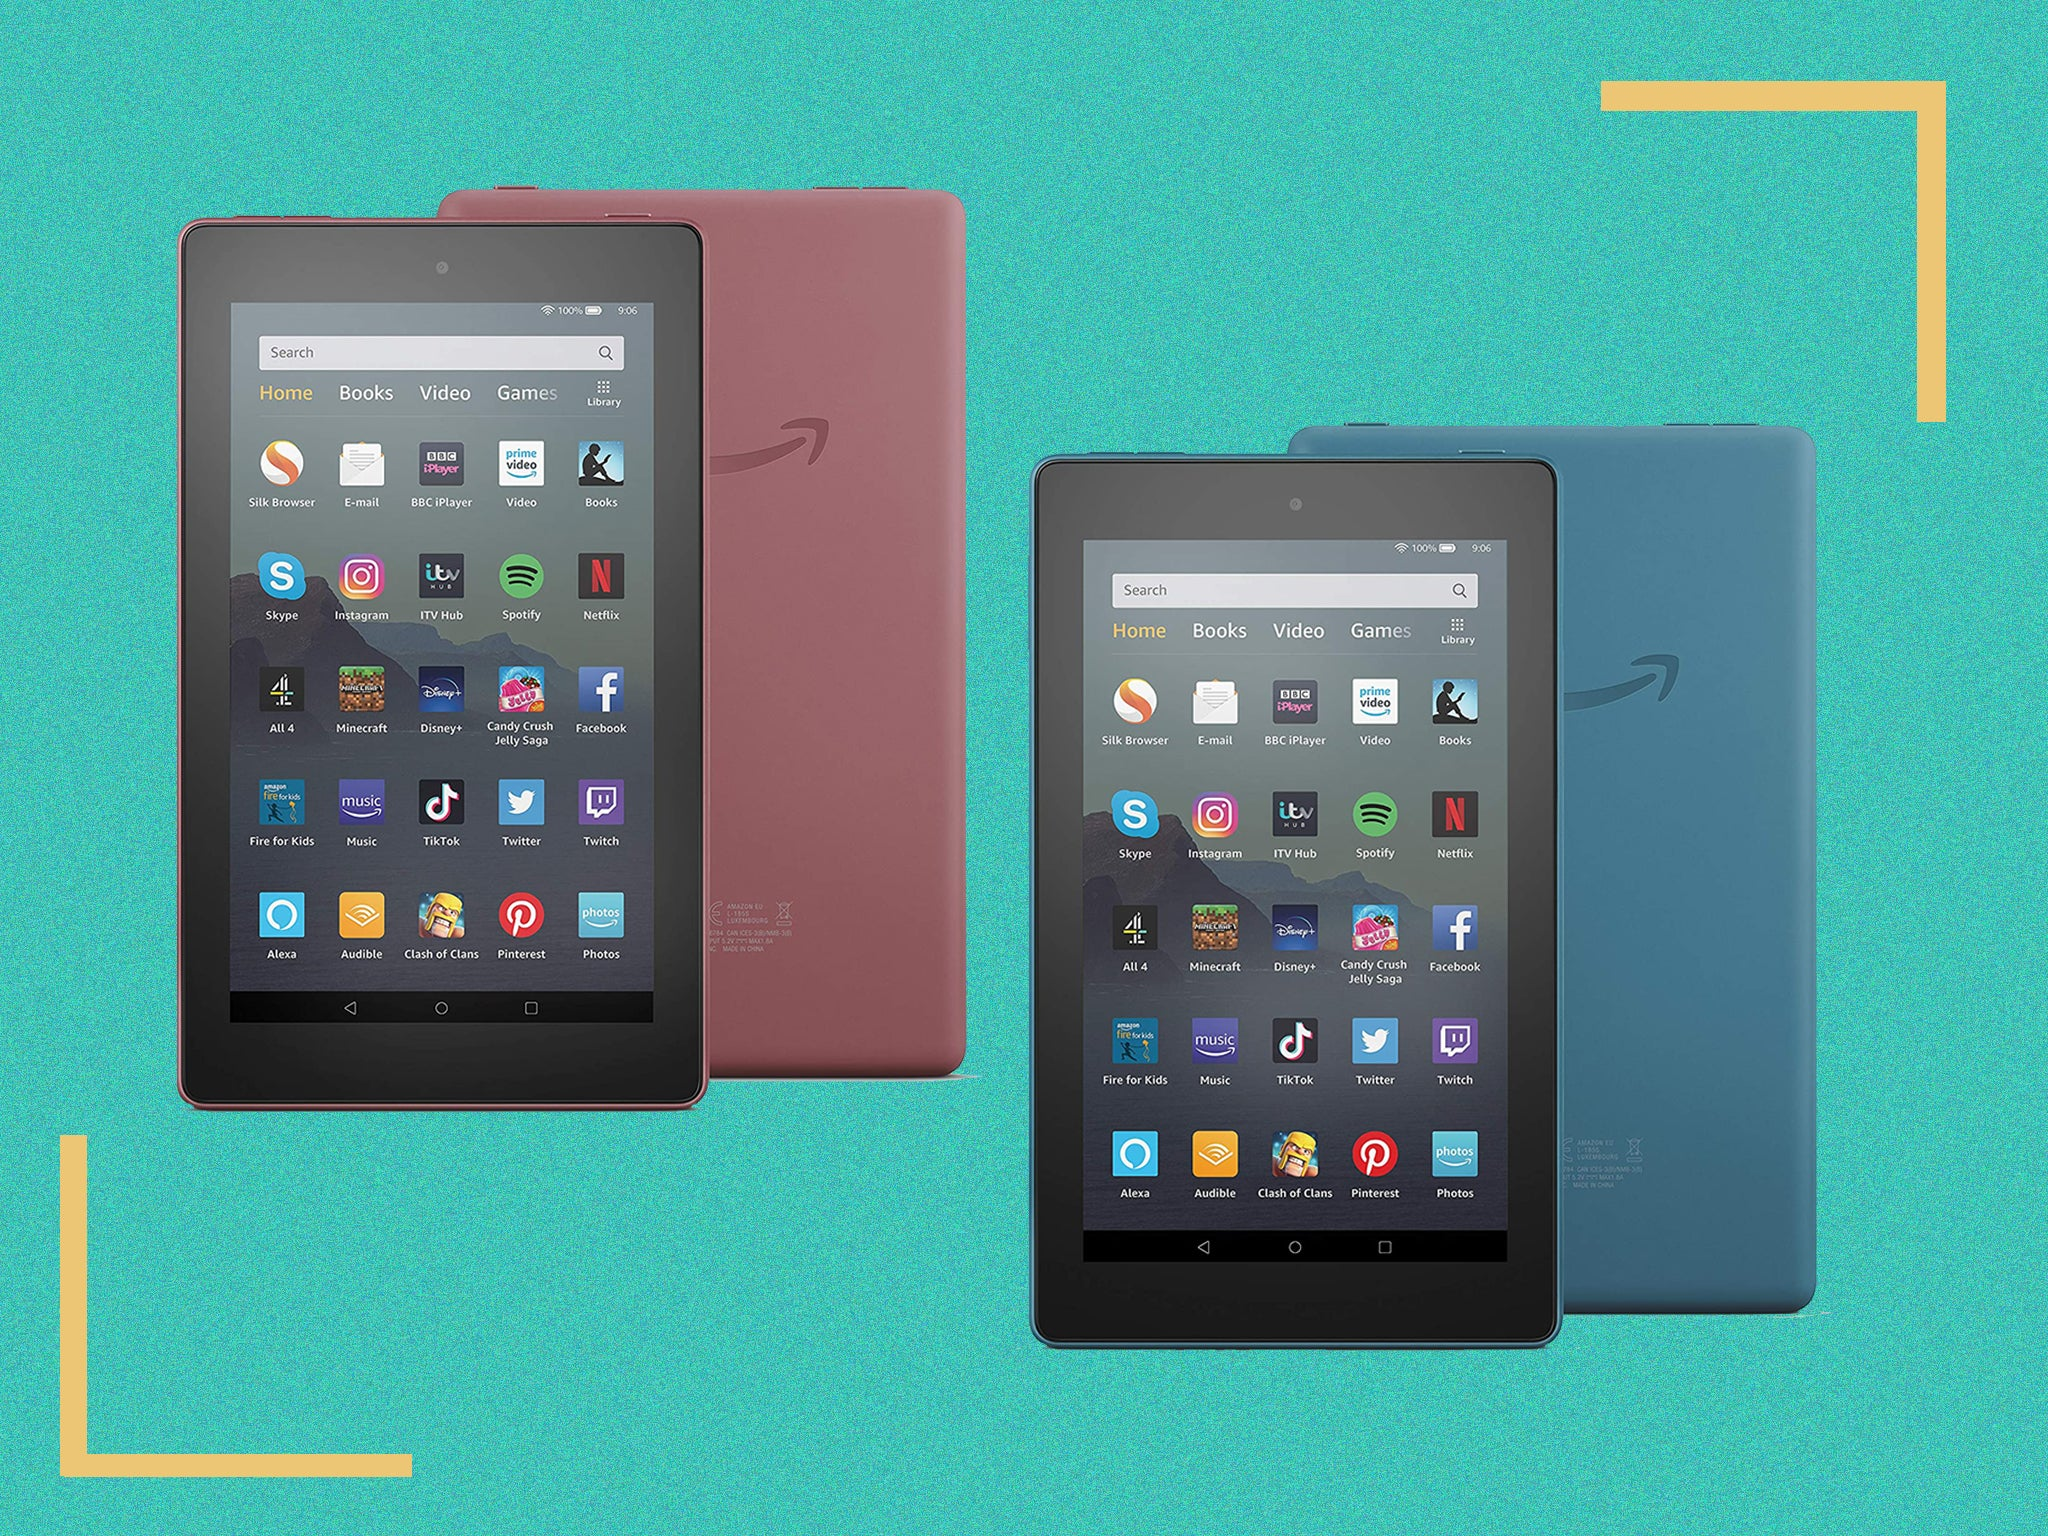 Amazon Fire Hd 7 Tablet Black Friday Deal Save 30 On The Best Selling Device The Independent